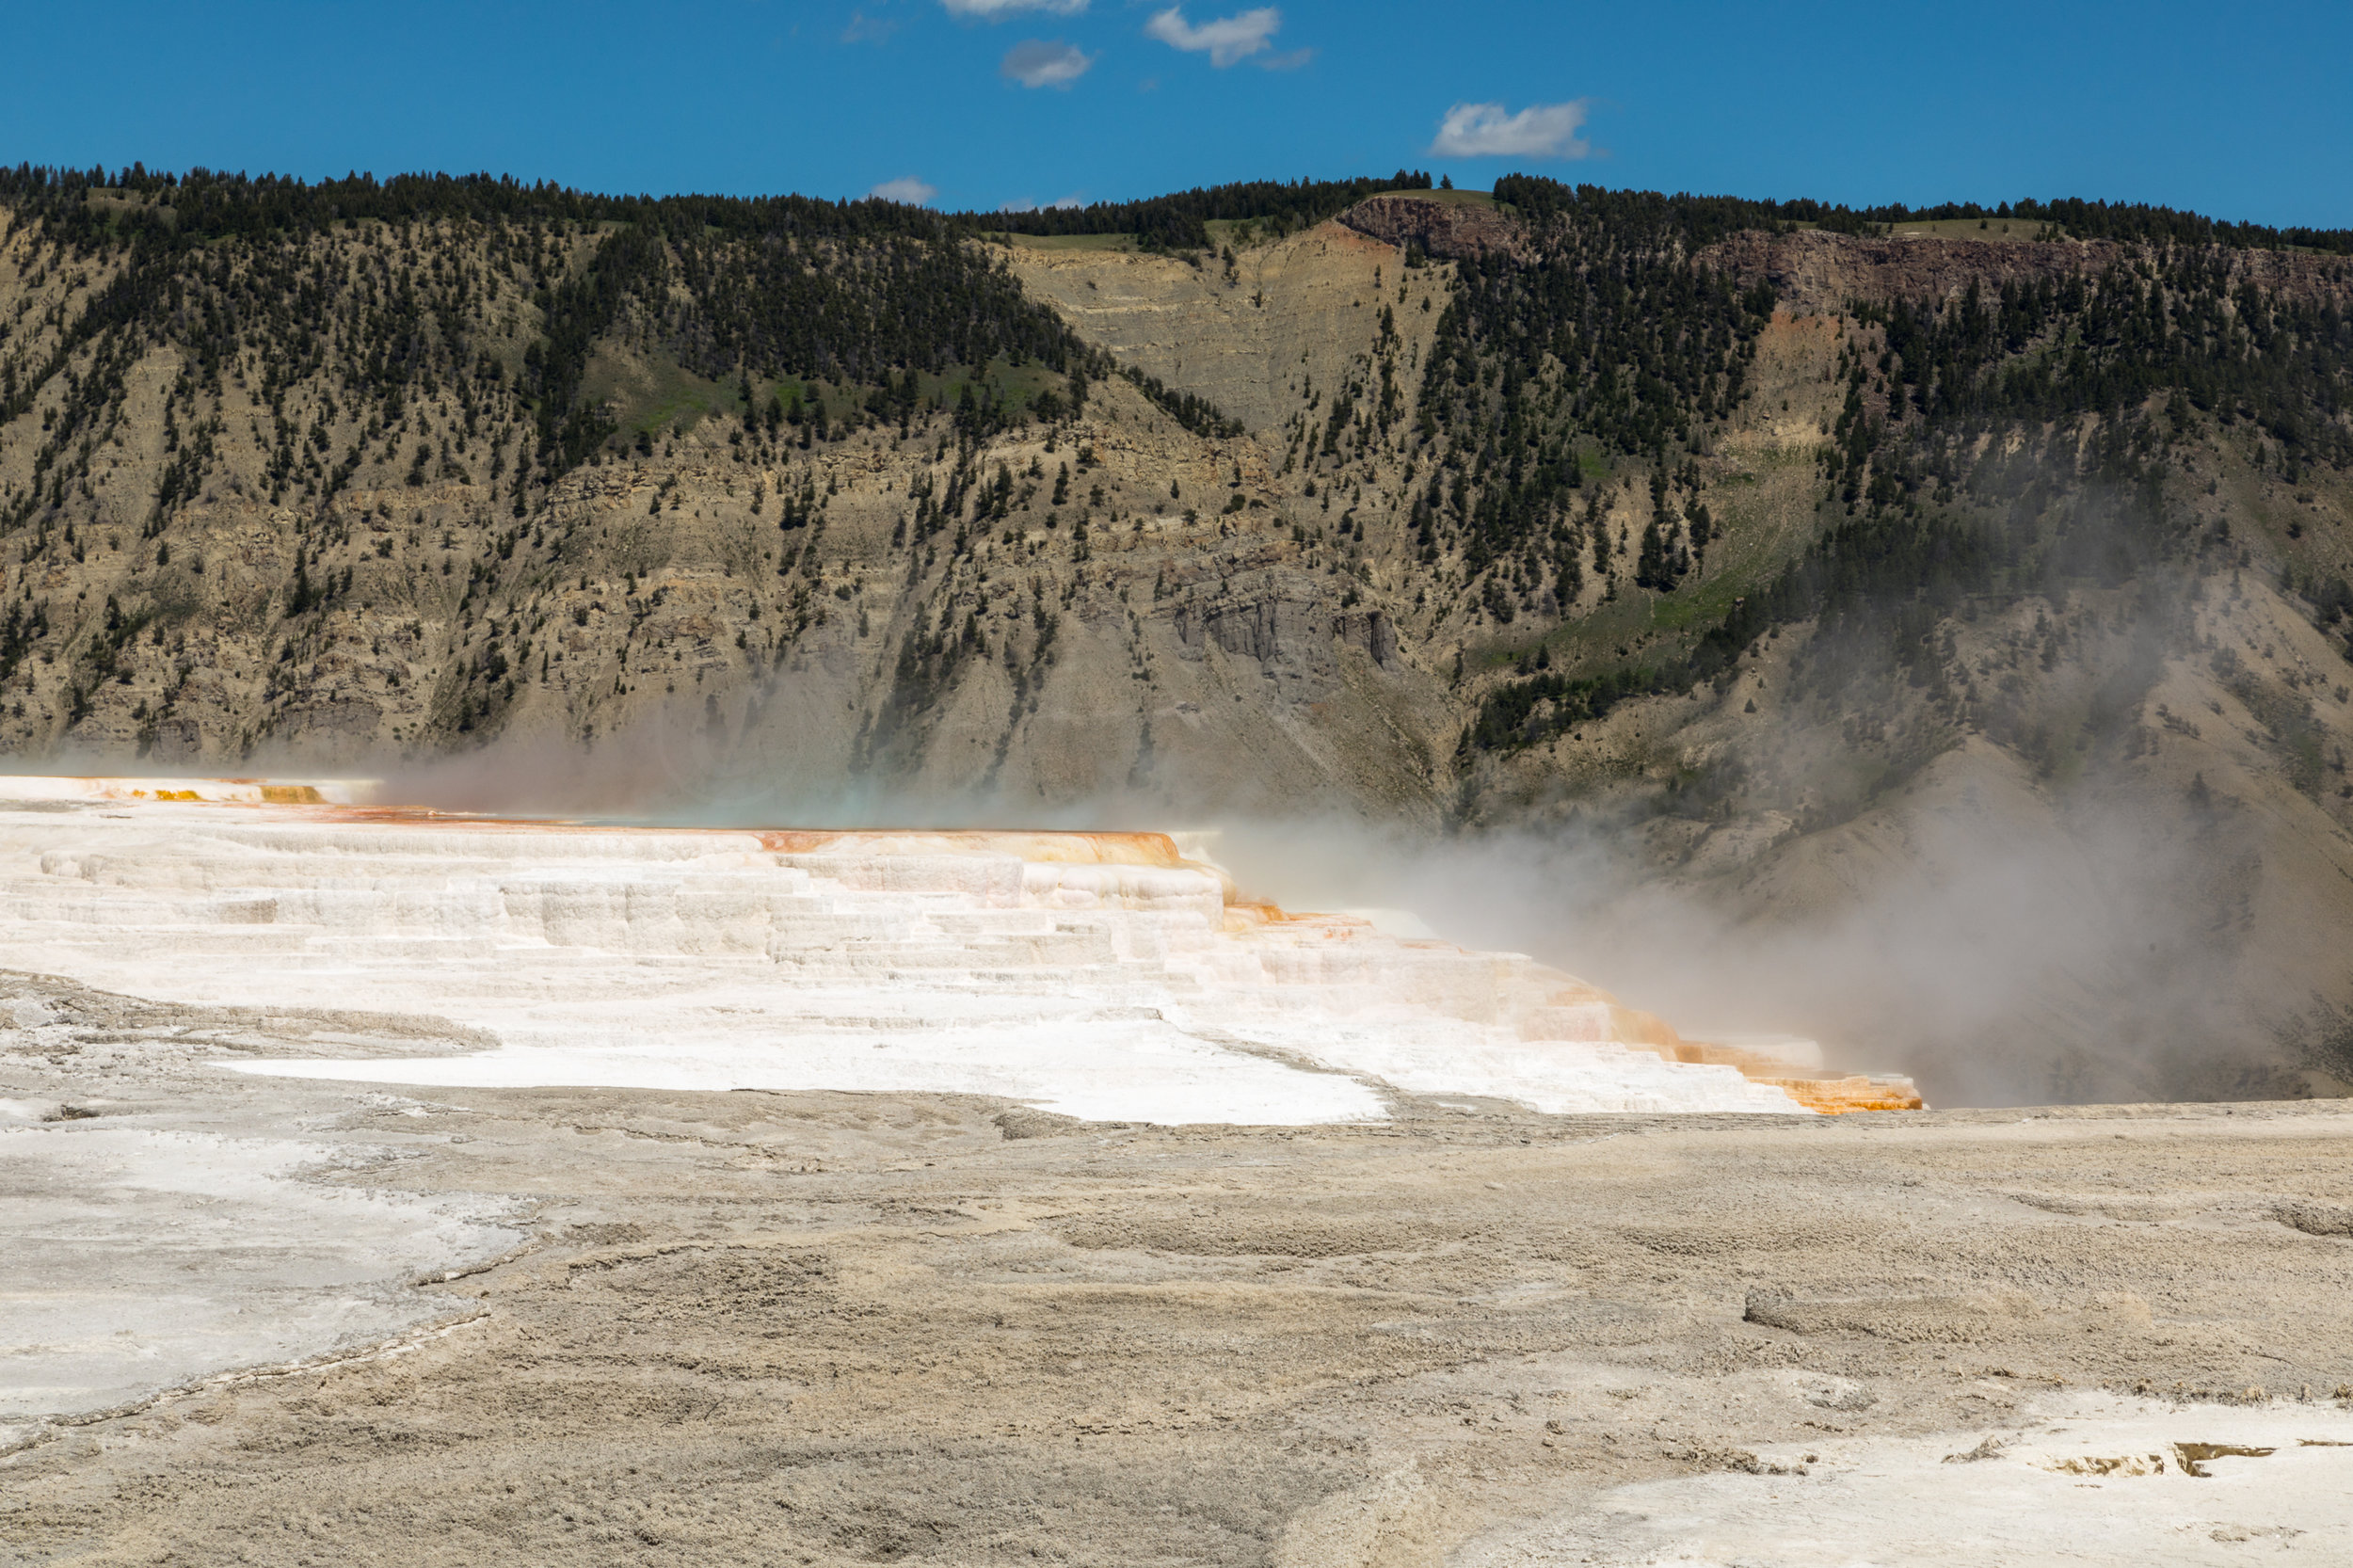 Mammoth Hot Springs, Yellowstone National Park, Image # 7394